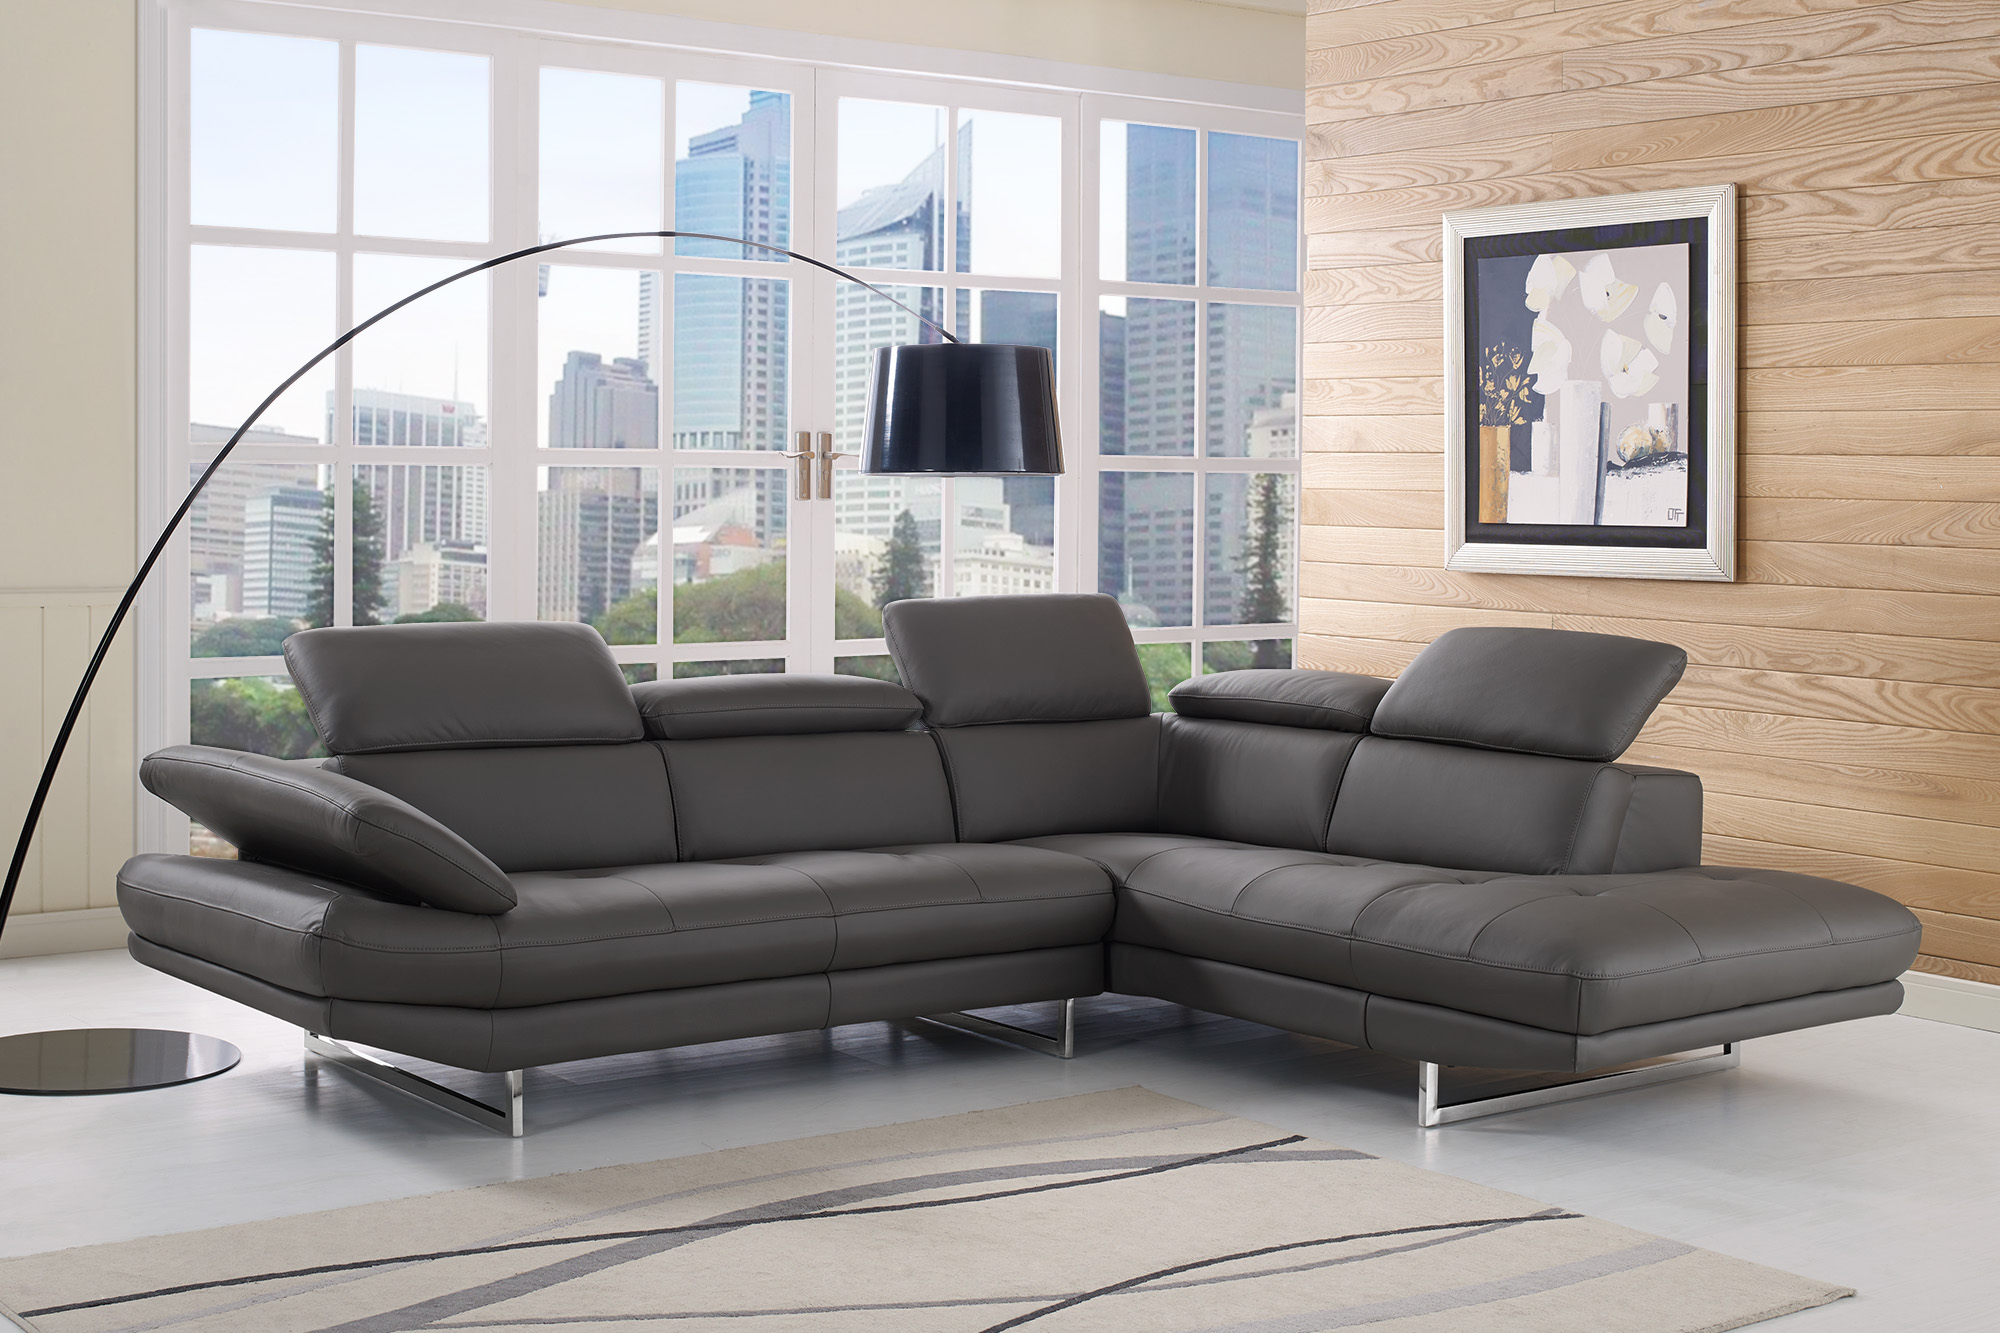 Adjustable Advanced Italian Leather Corner Couch